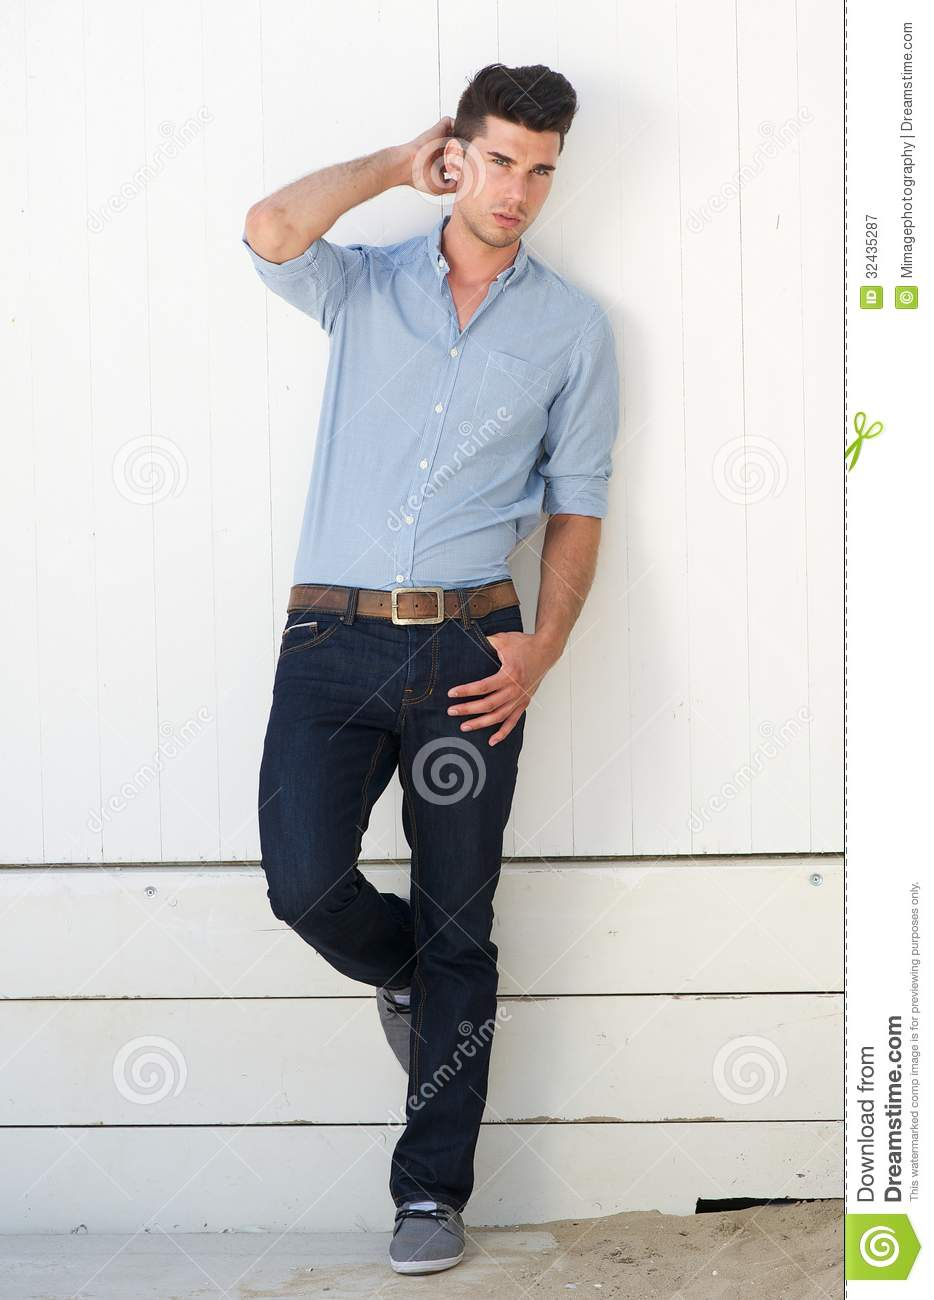 Top Handsome Male Fashion Model Standing Against White Wall Outdoors  JQ35